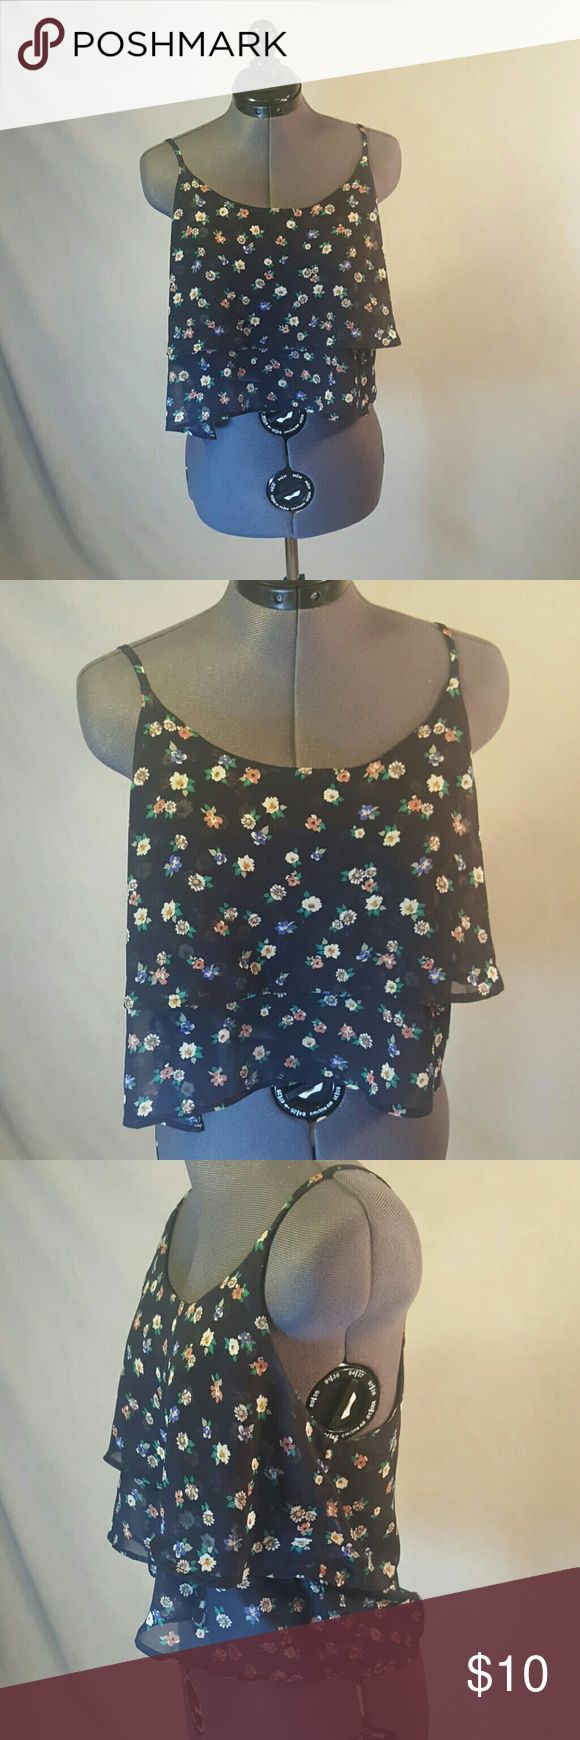 Papaya Floral Sheer Crop Top Papaya Floral Sheer Crop Top. Navy Blue Background. Made of that sheer material you can see through, so needs to be worn with Bralette. 100% Polyester. size L (juniors) Papaya Tops Crop Tops